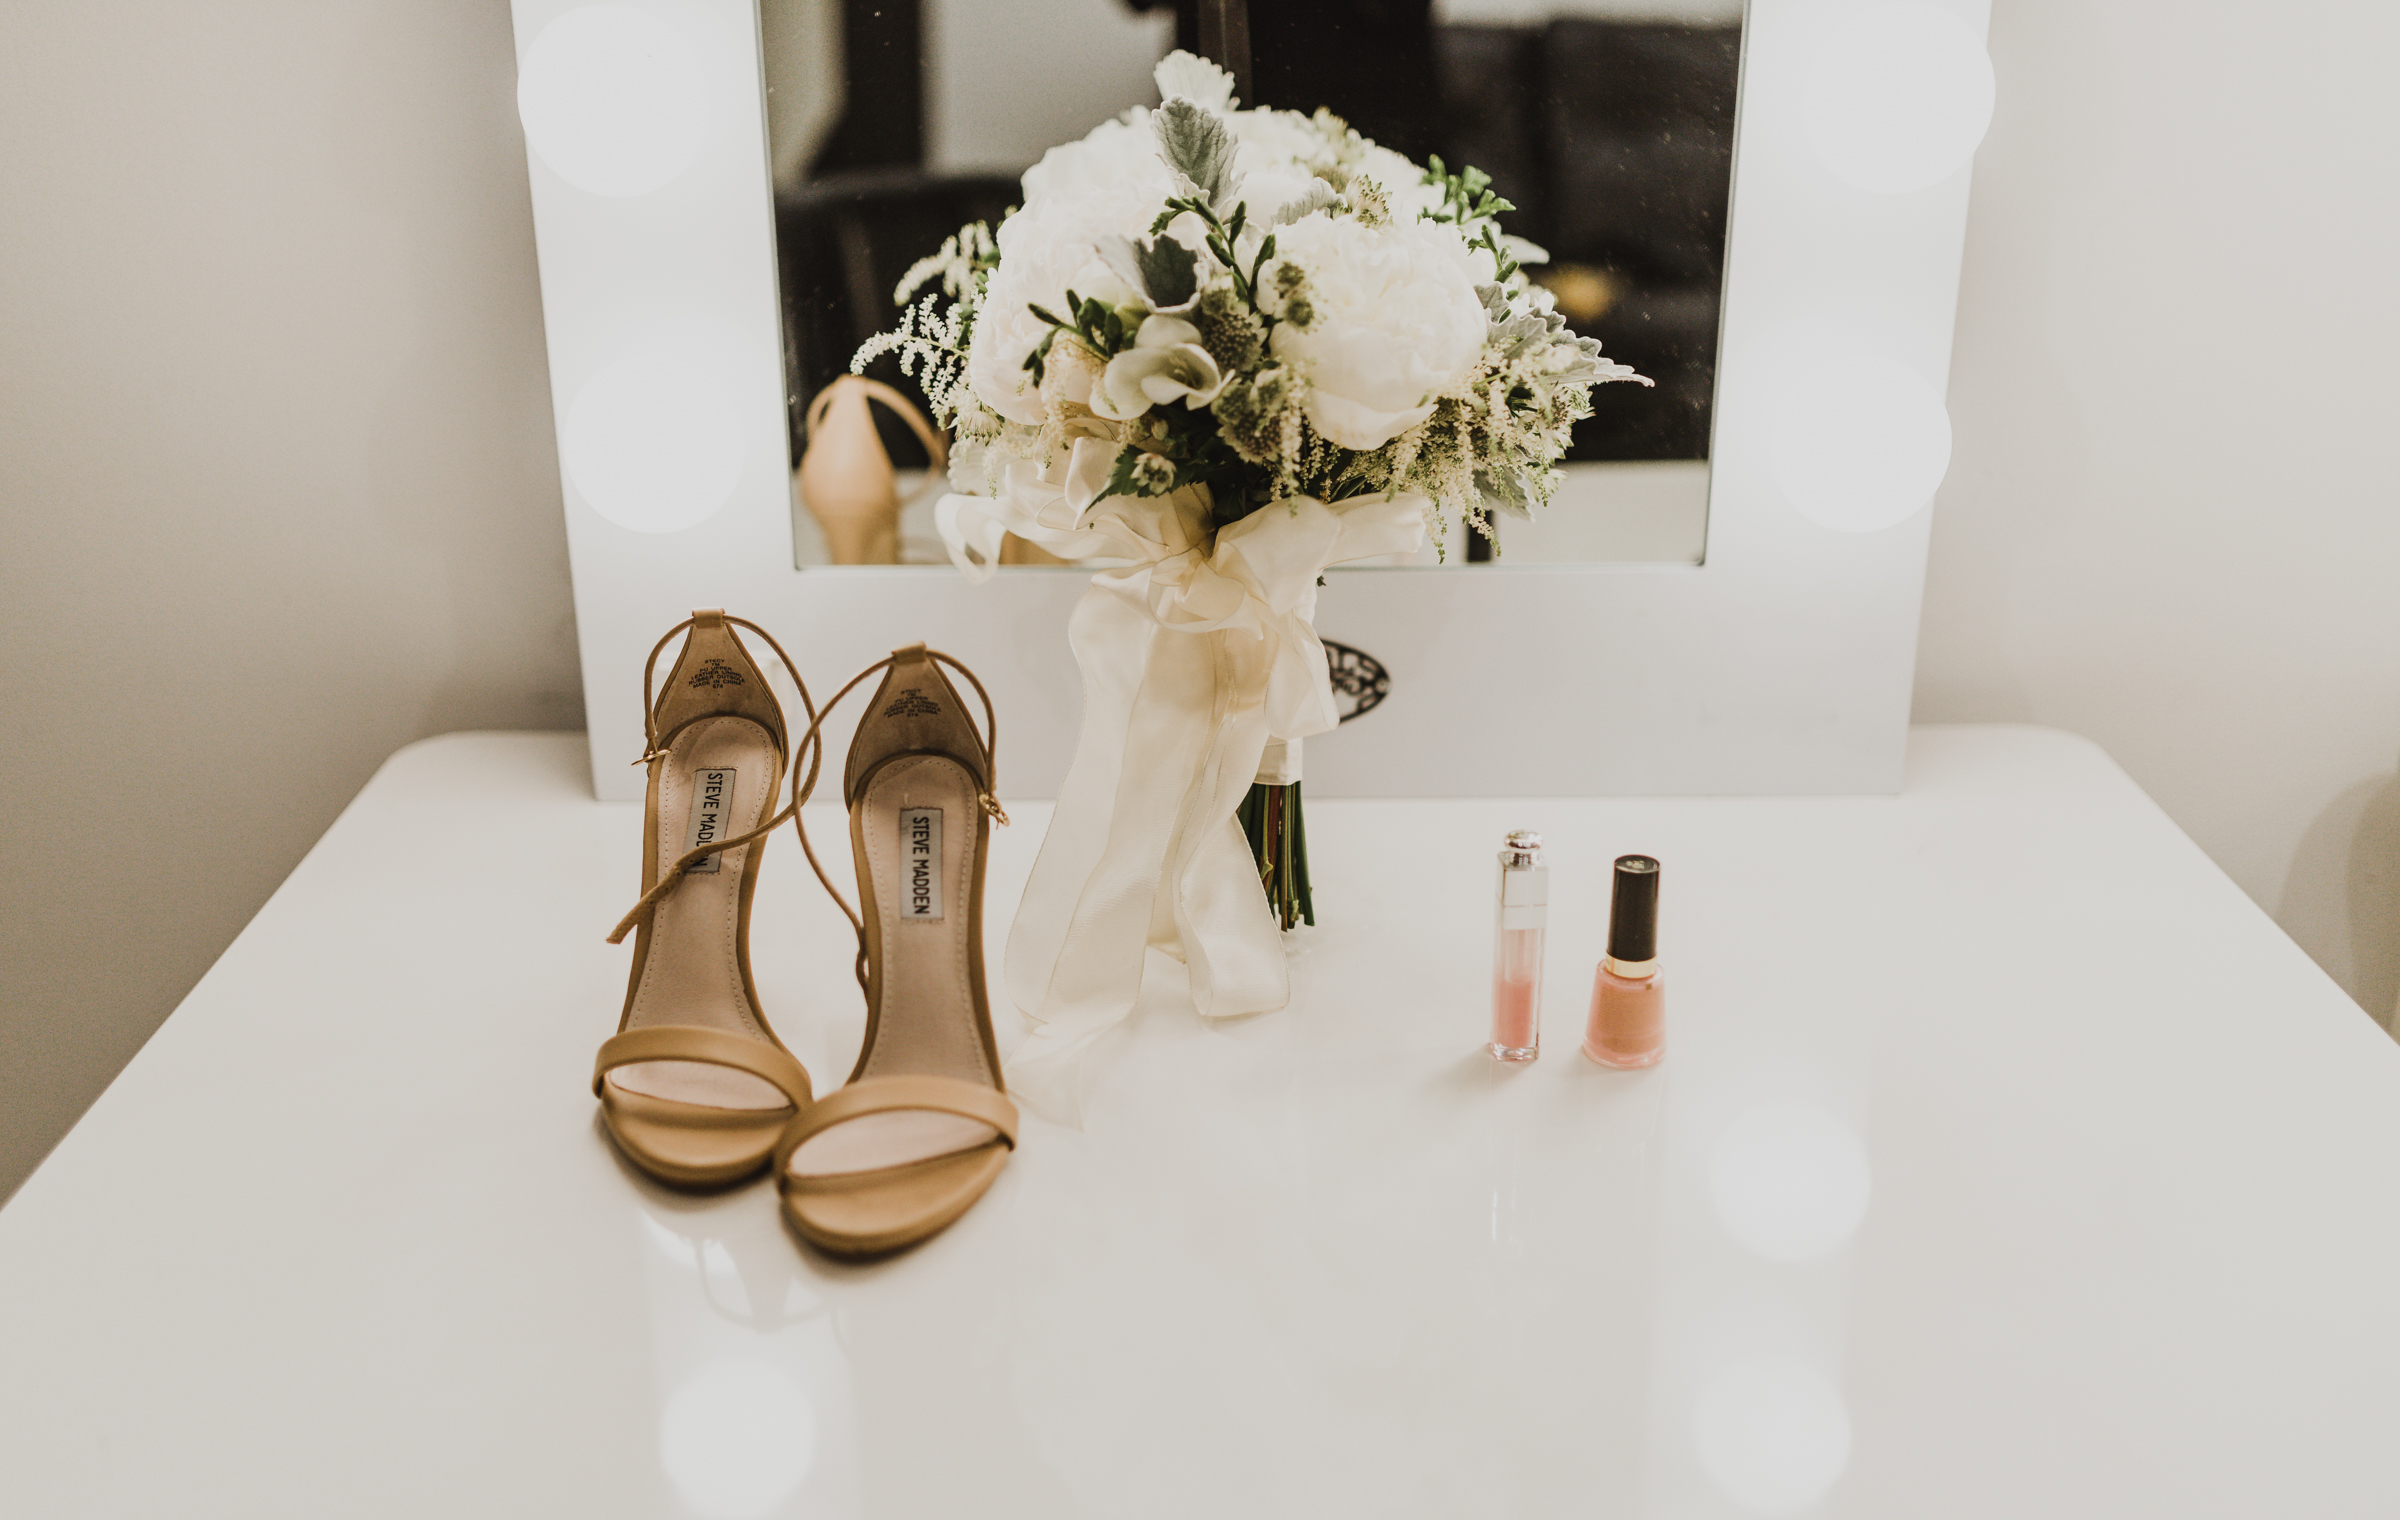 ©Isaiah + Taylor Photography - Big Door Studios Wedding, El Segundo, Los Angeles Wedding Photographer-5.jpg